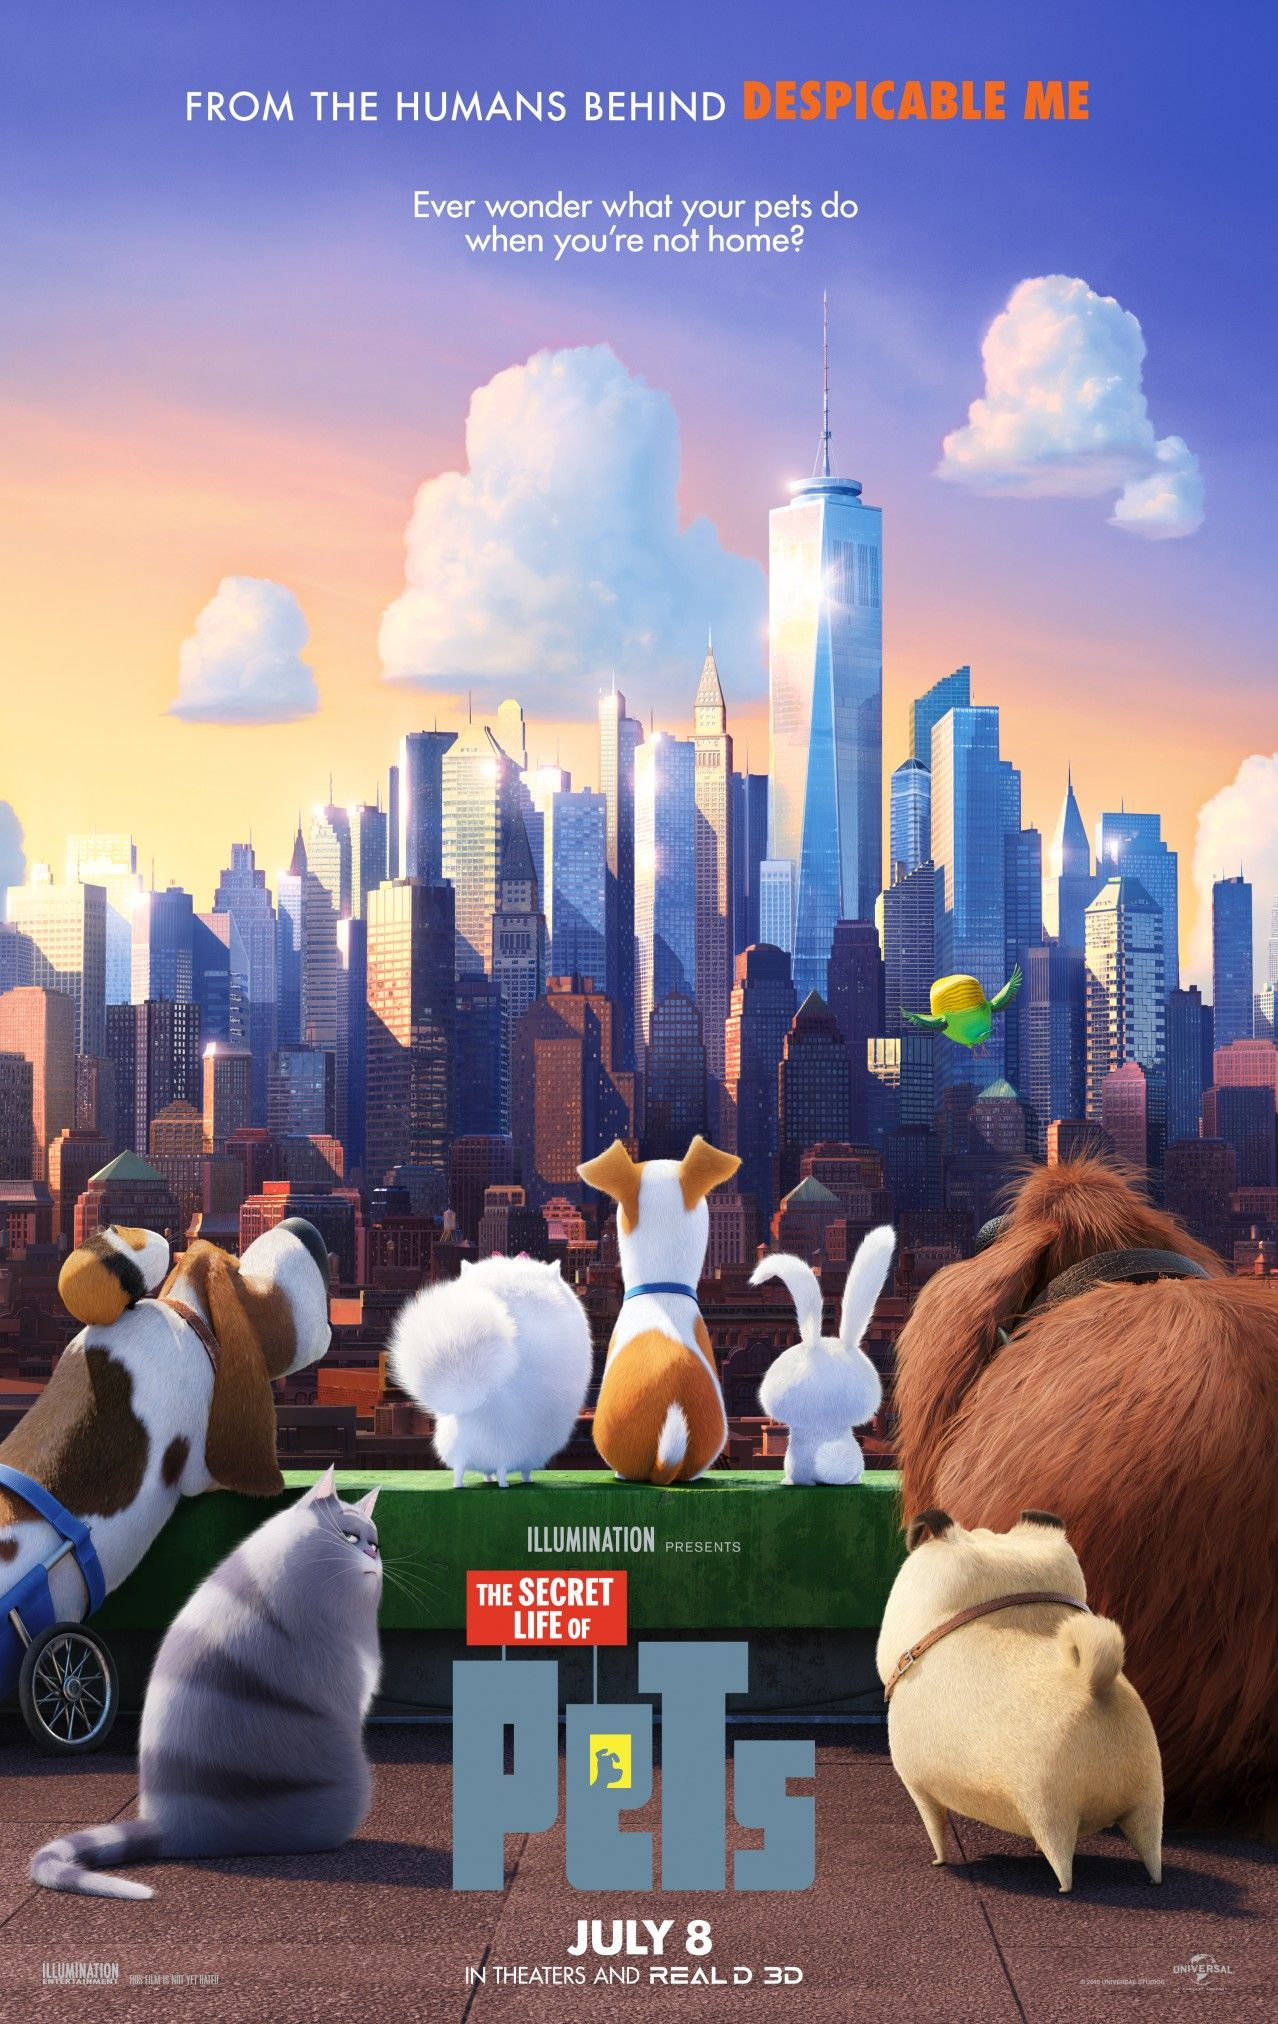 The Secret Life Of Pets Trailer Opens July 8th